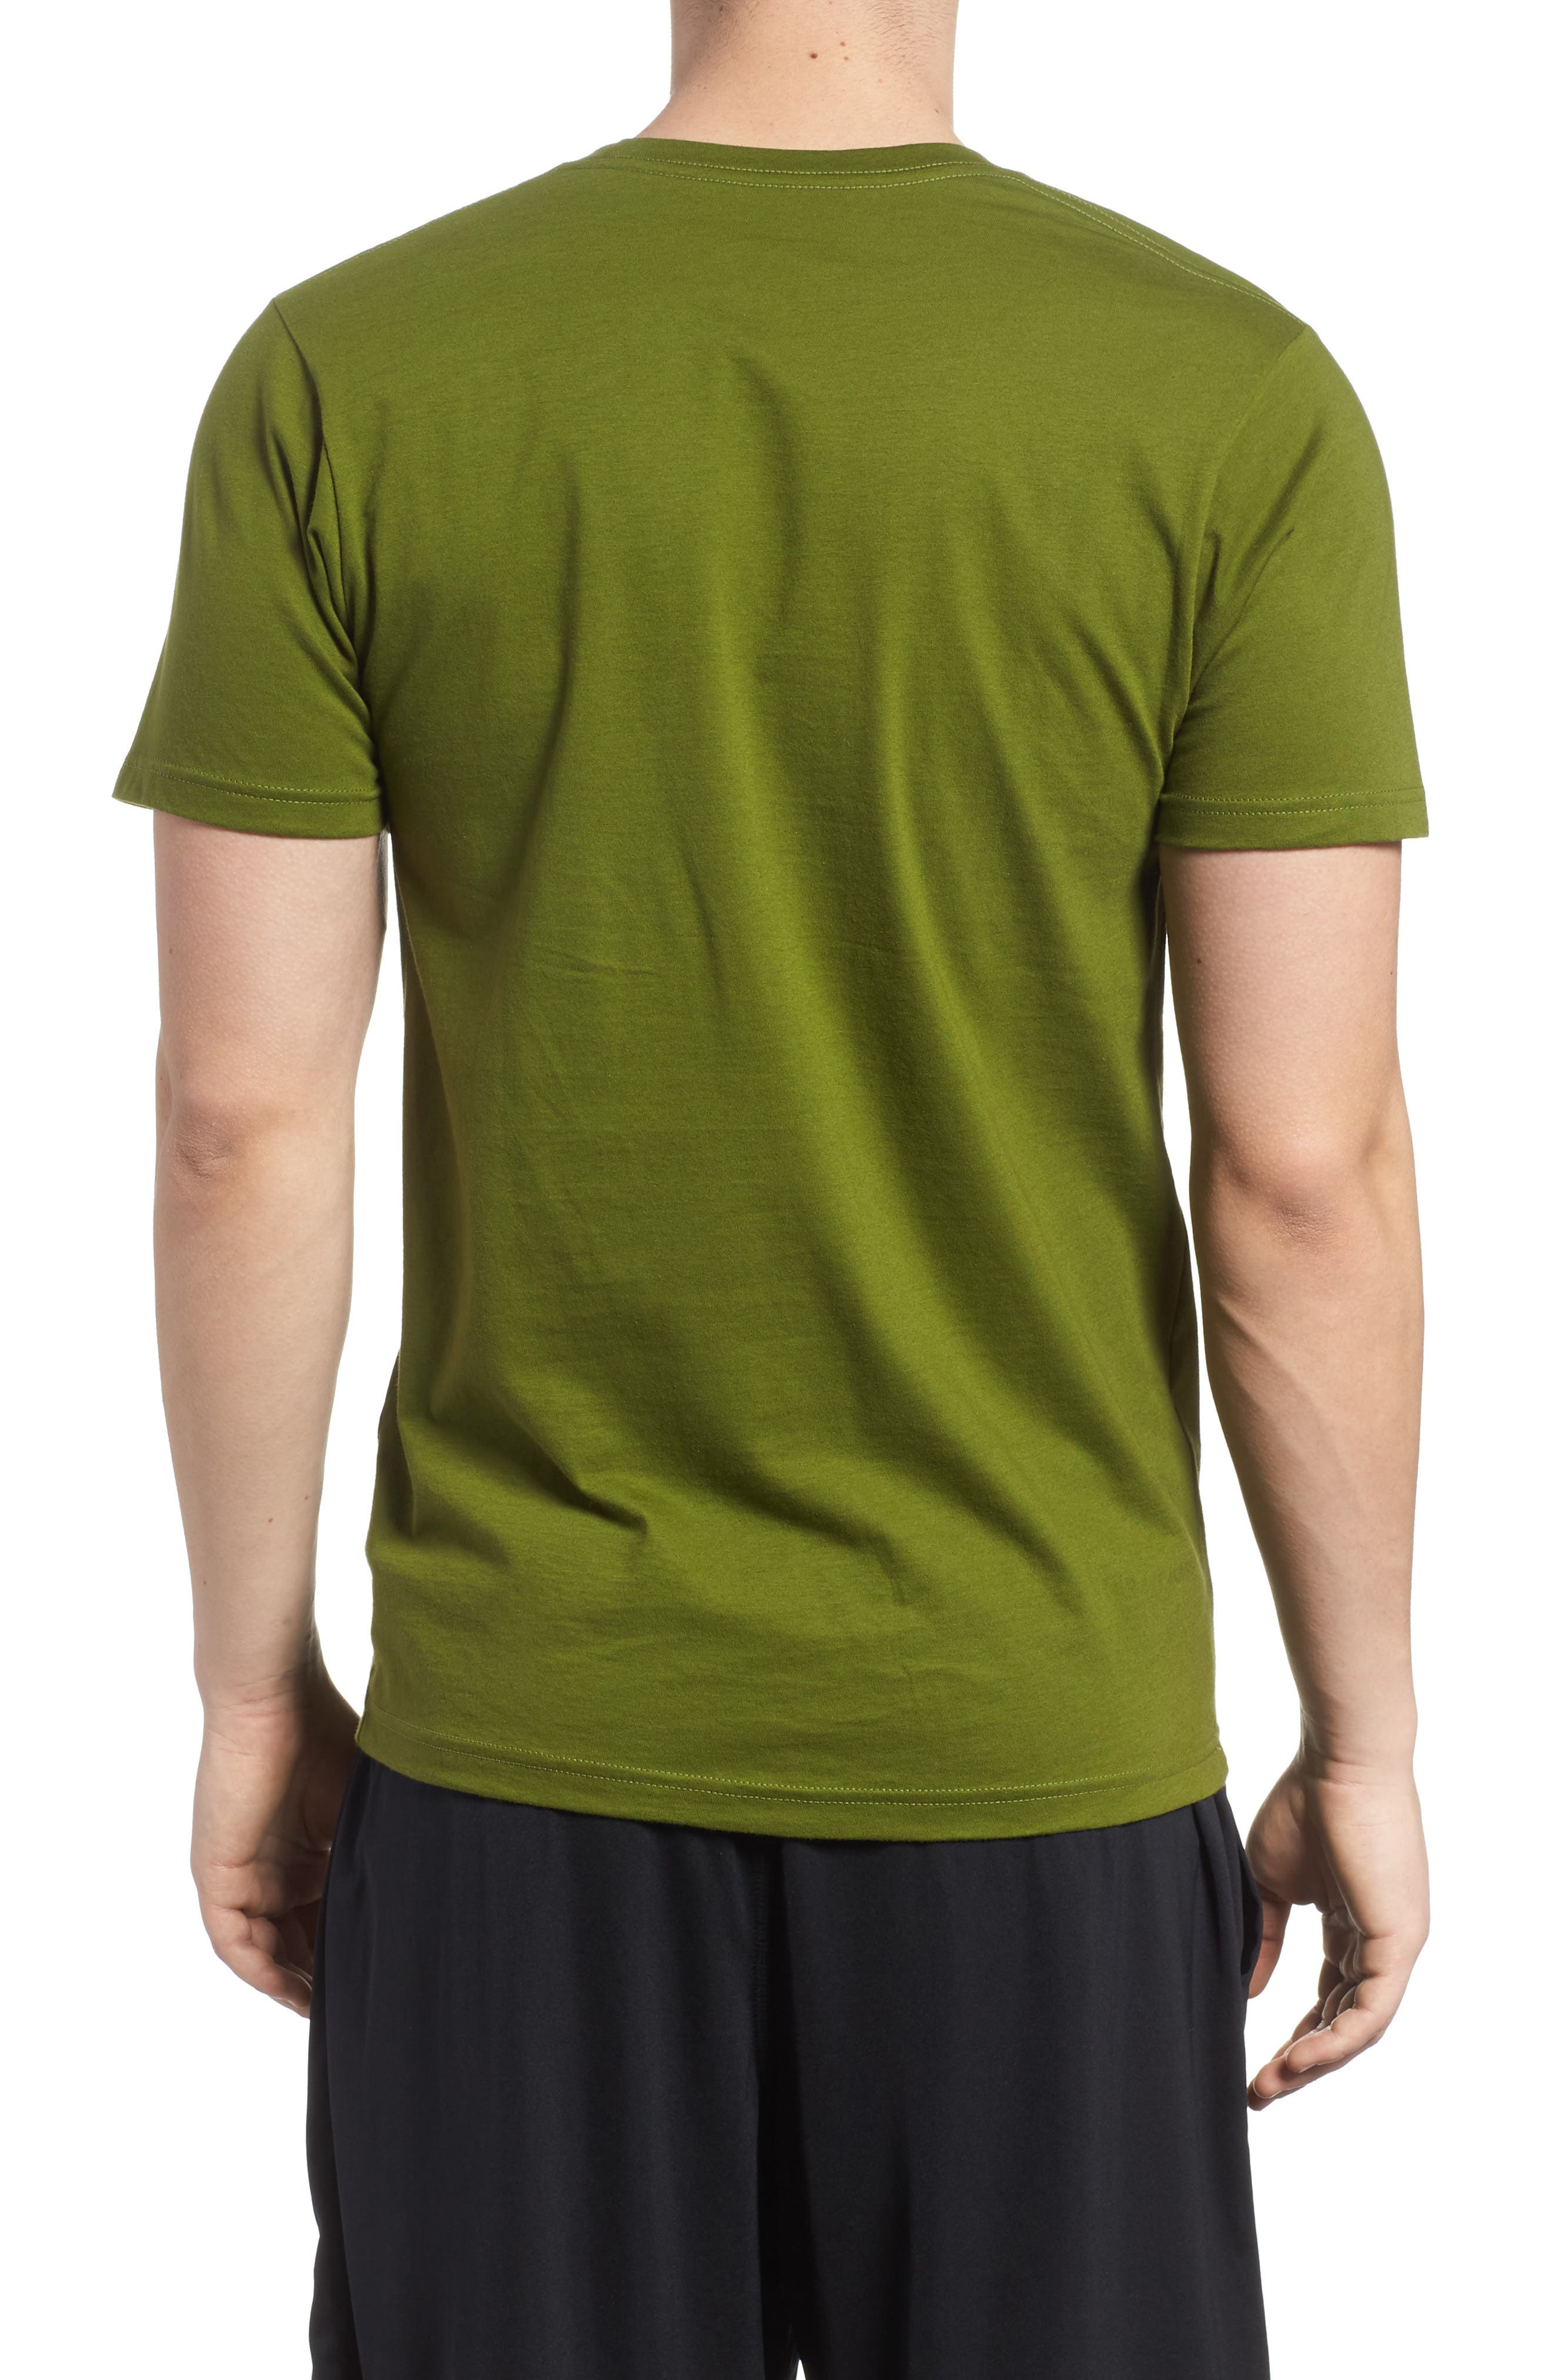 Oily Olas Slim Fit Organic Cotton T-Shirt,                             Alternate thumbnail 2, color,                             Sprouted Green